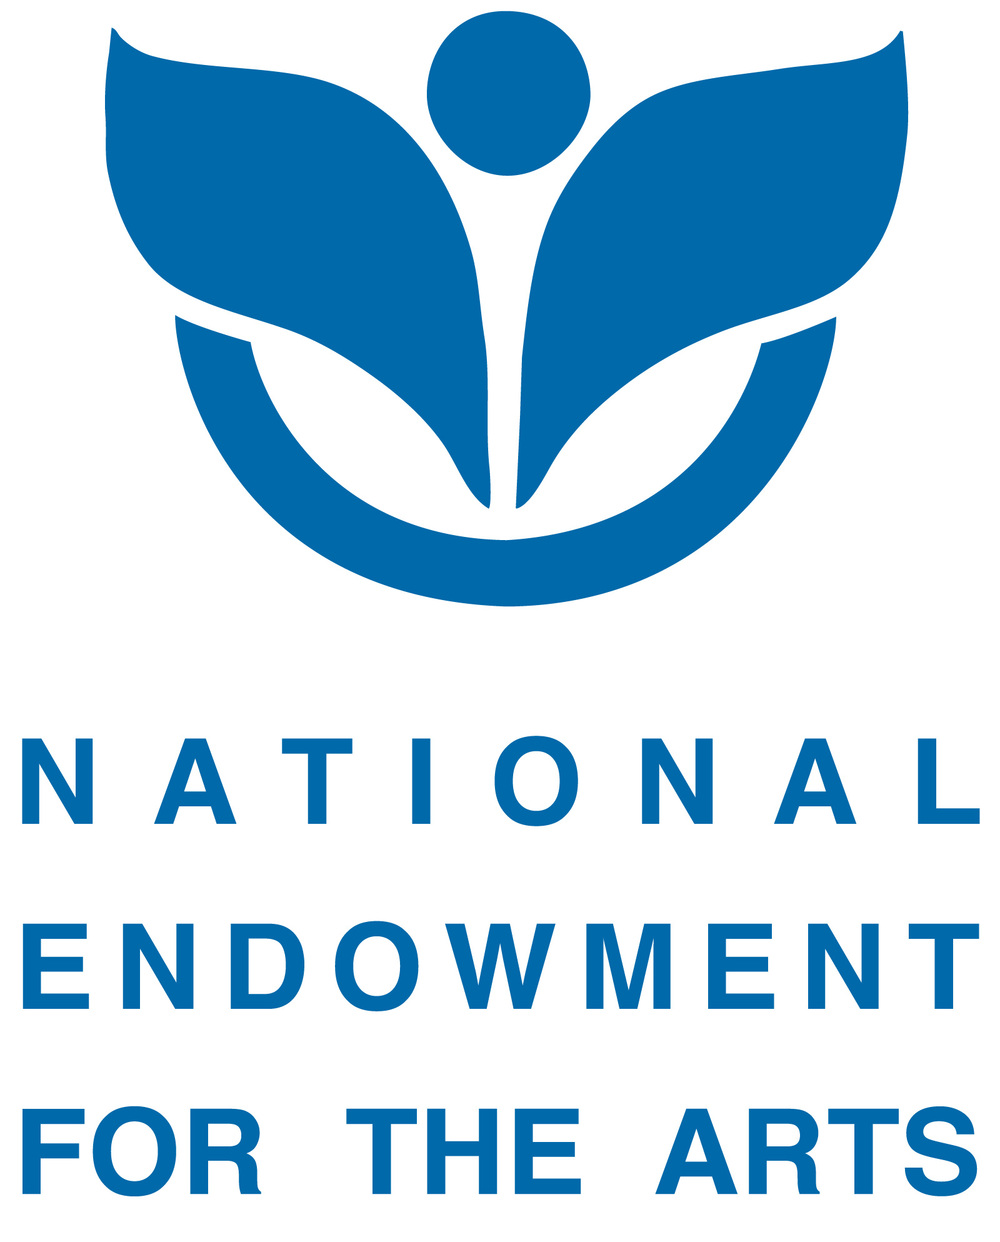 NATIONAL ENDOWMENT FOR THE ARTS-1.jpg